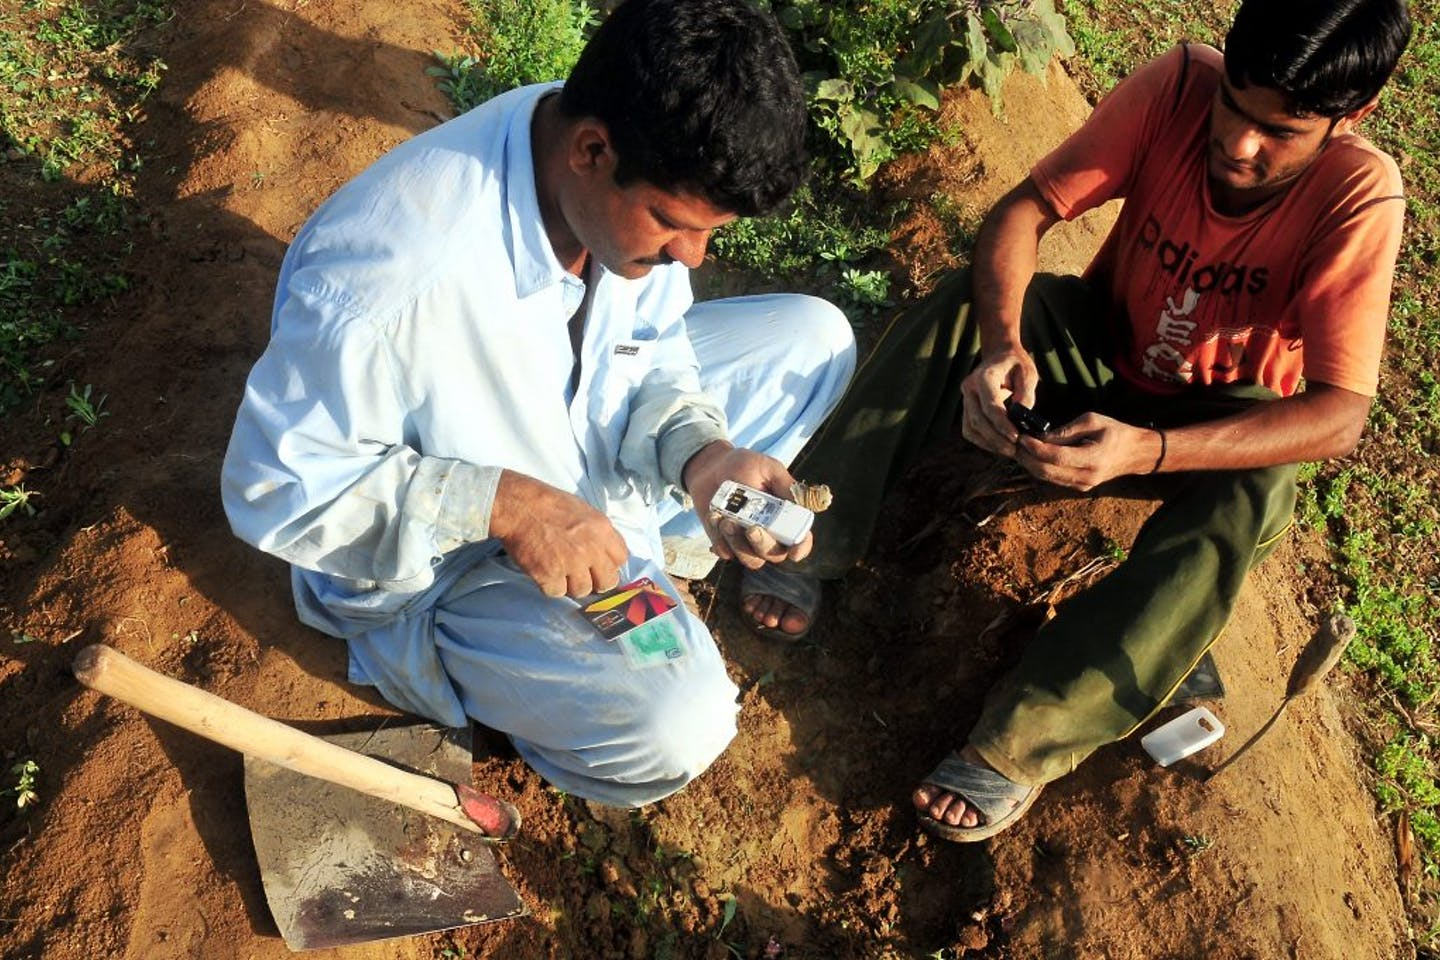 Farmers in Pakistan use sms to warn of water